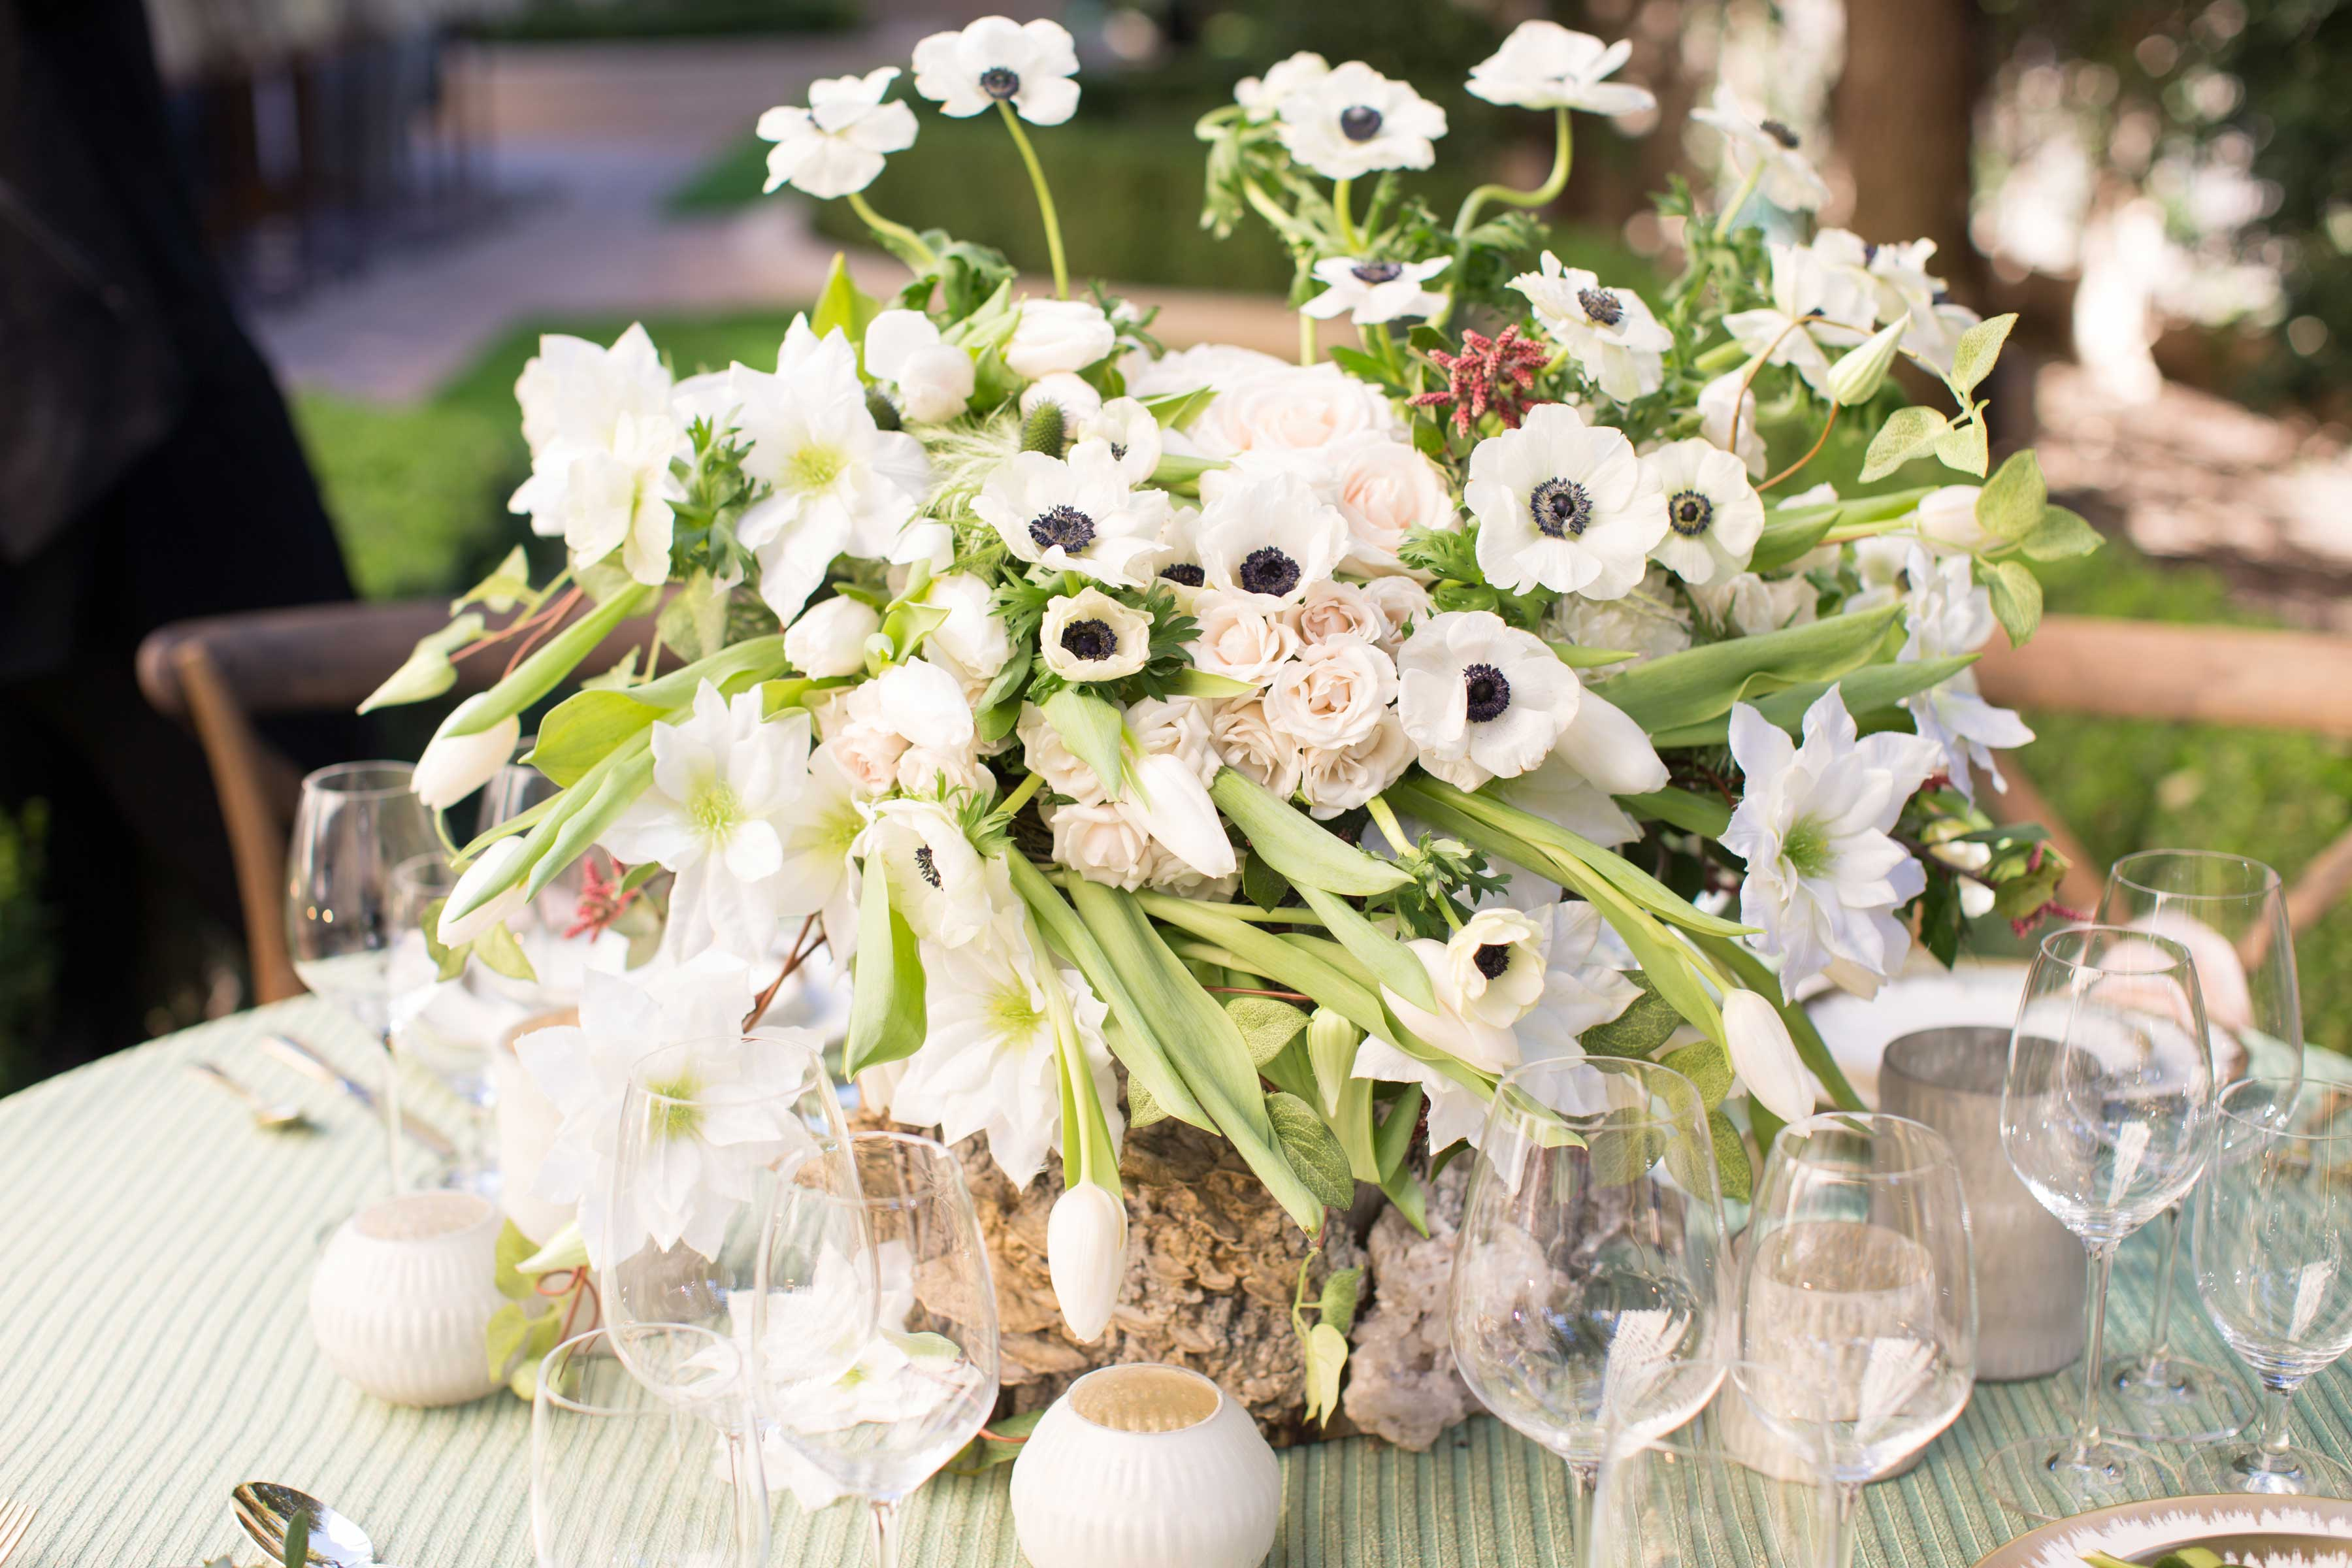 Centerpiece with anemone flowers reception